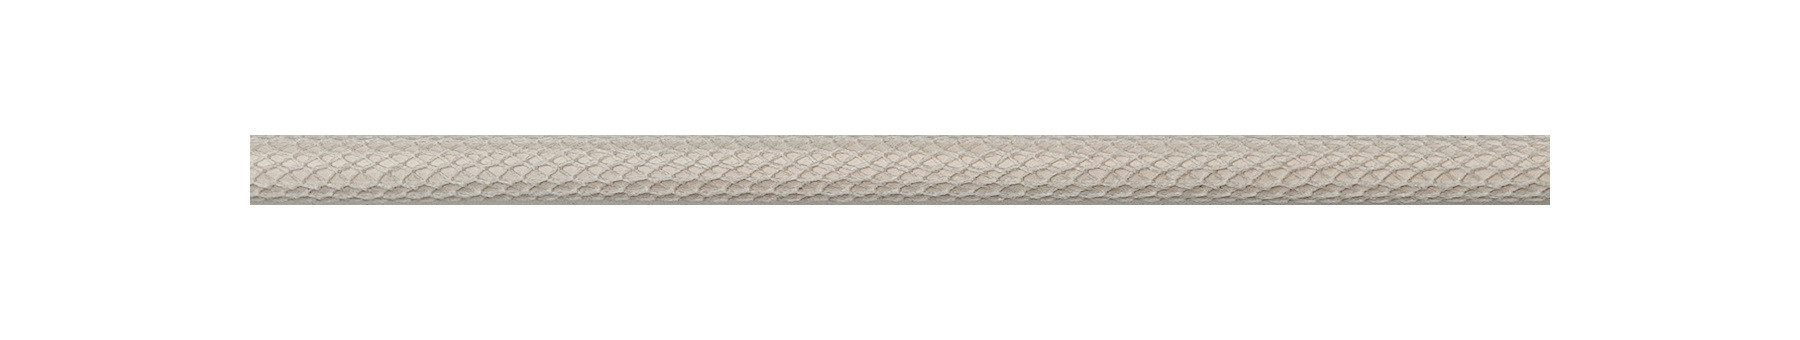 Textile Cable Off White Netlike Textile Covering